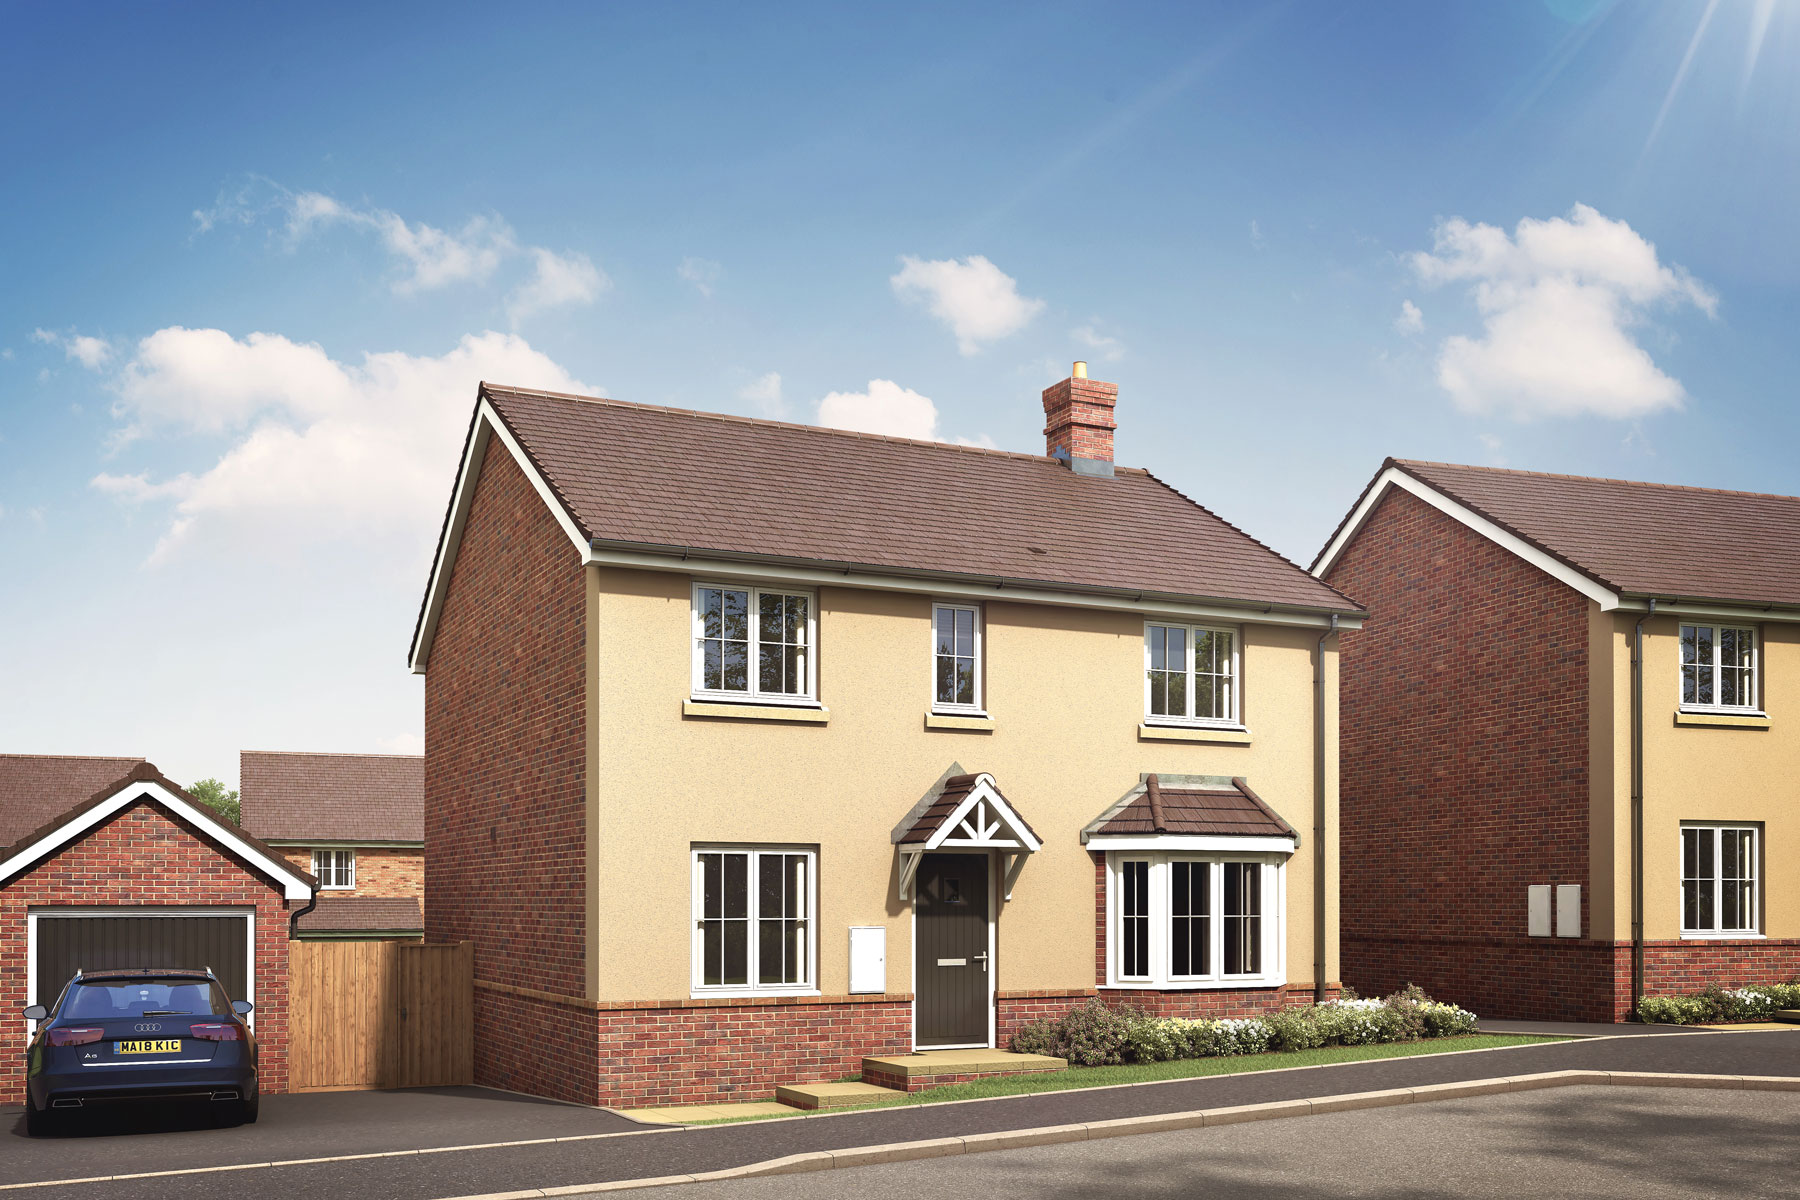 Artist's impression of a typical Shelford home